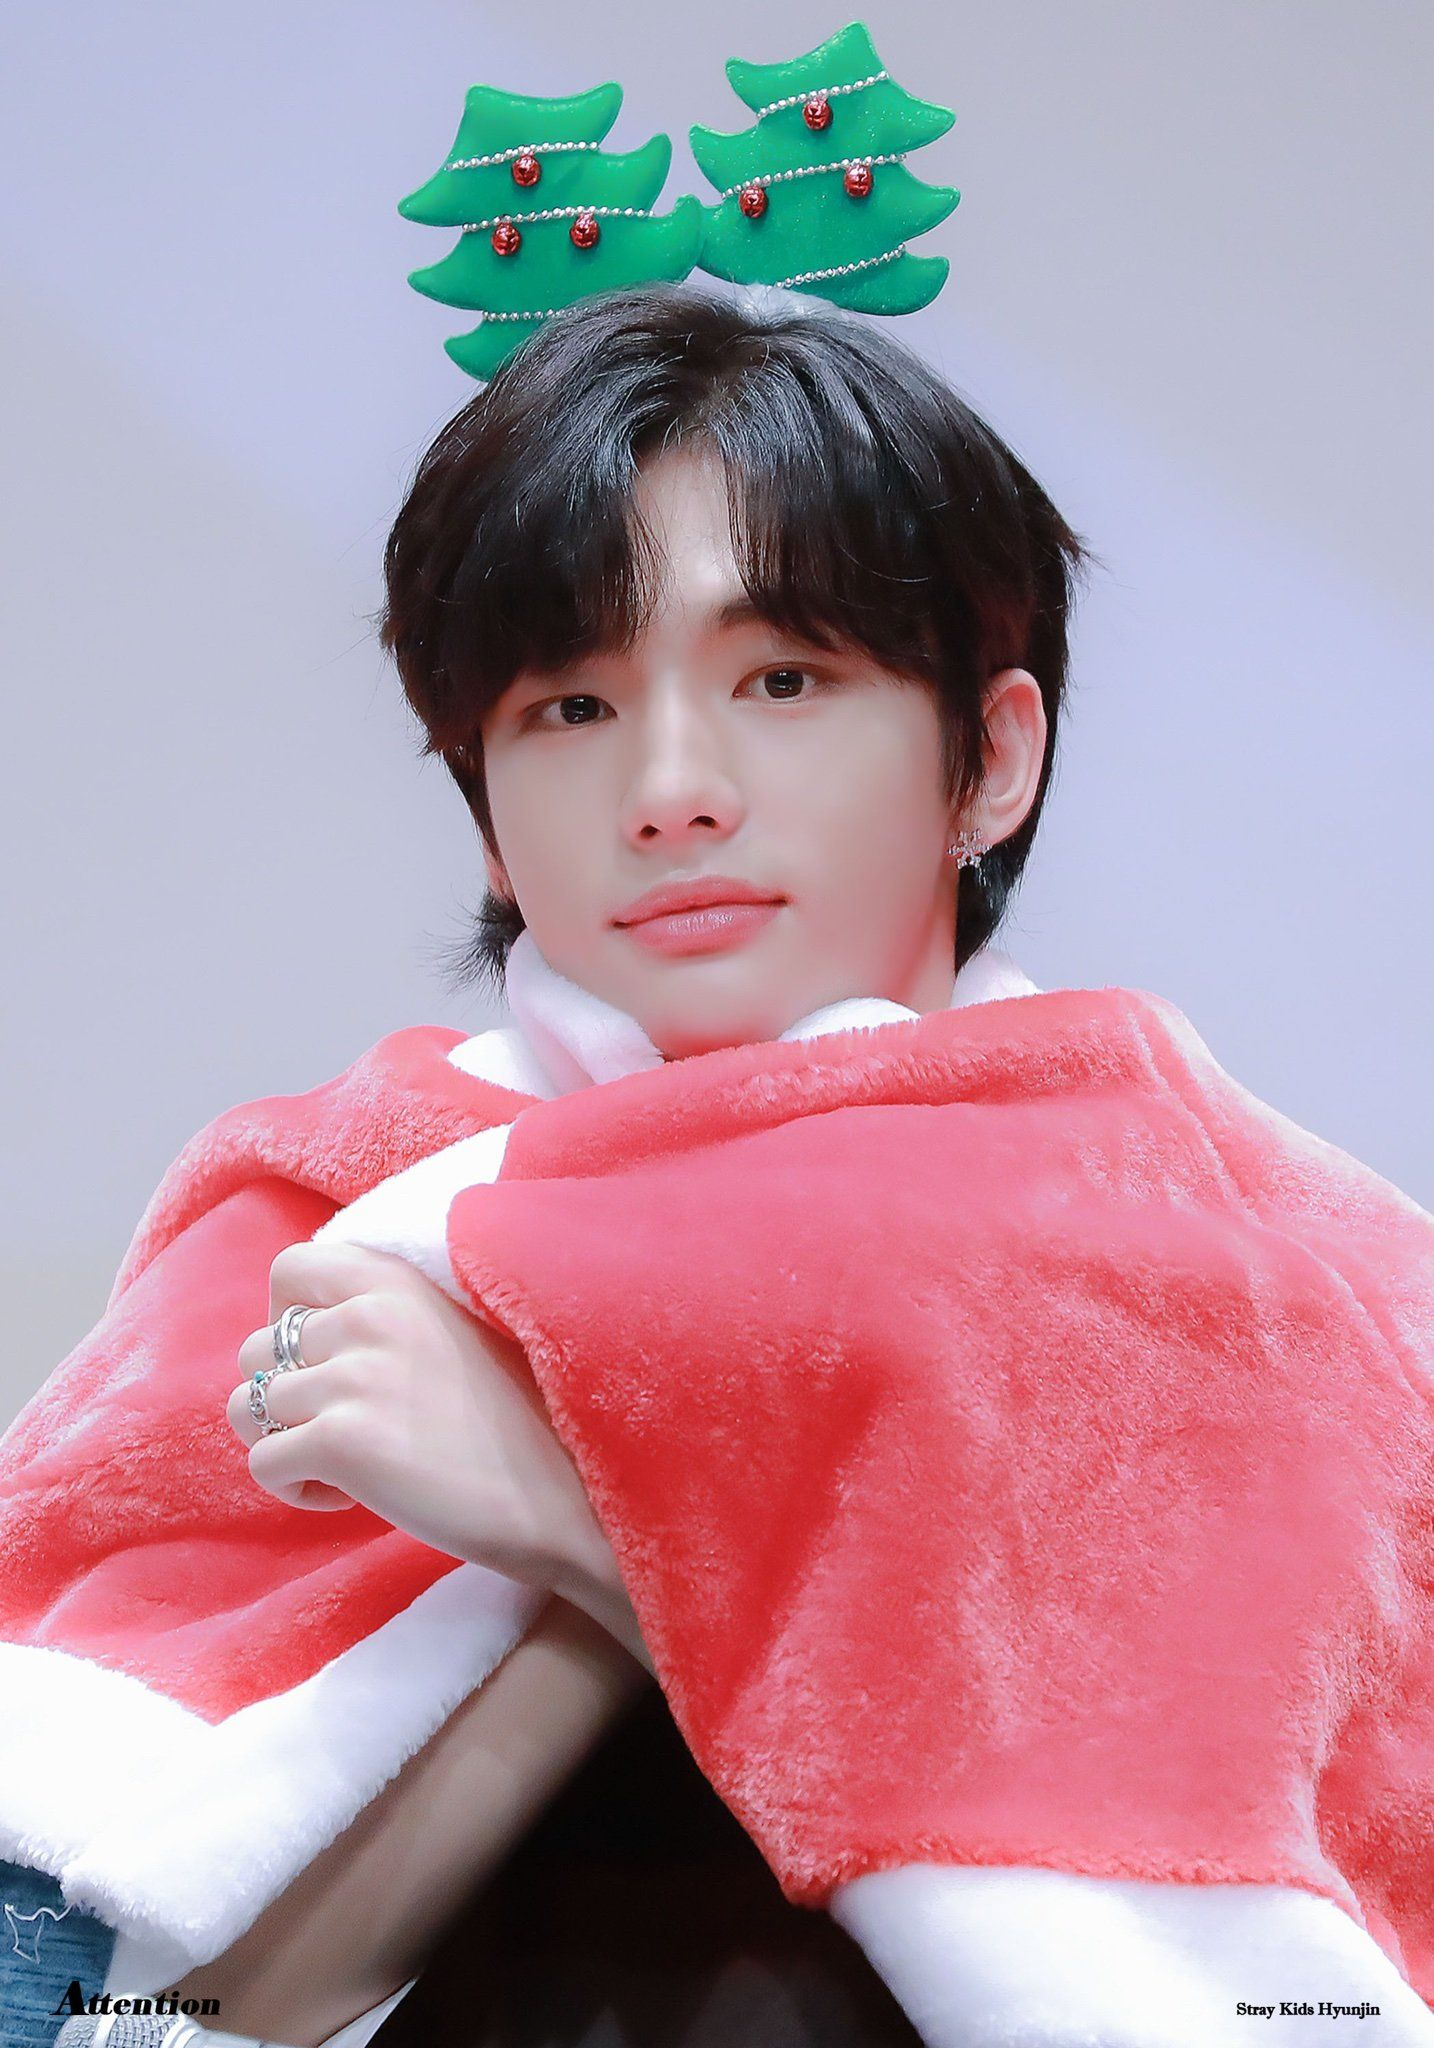 hyunjin pics on in 2020 Kids icon, Kids diary, Kids pictures